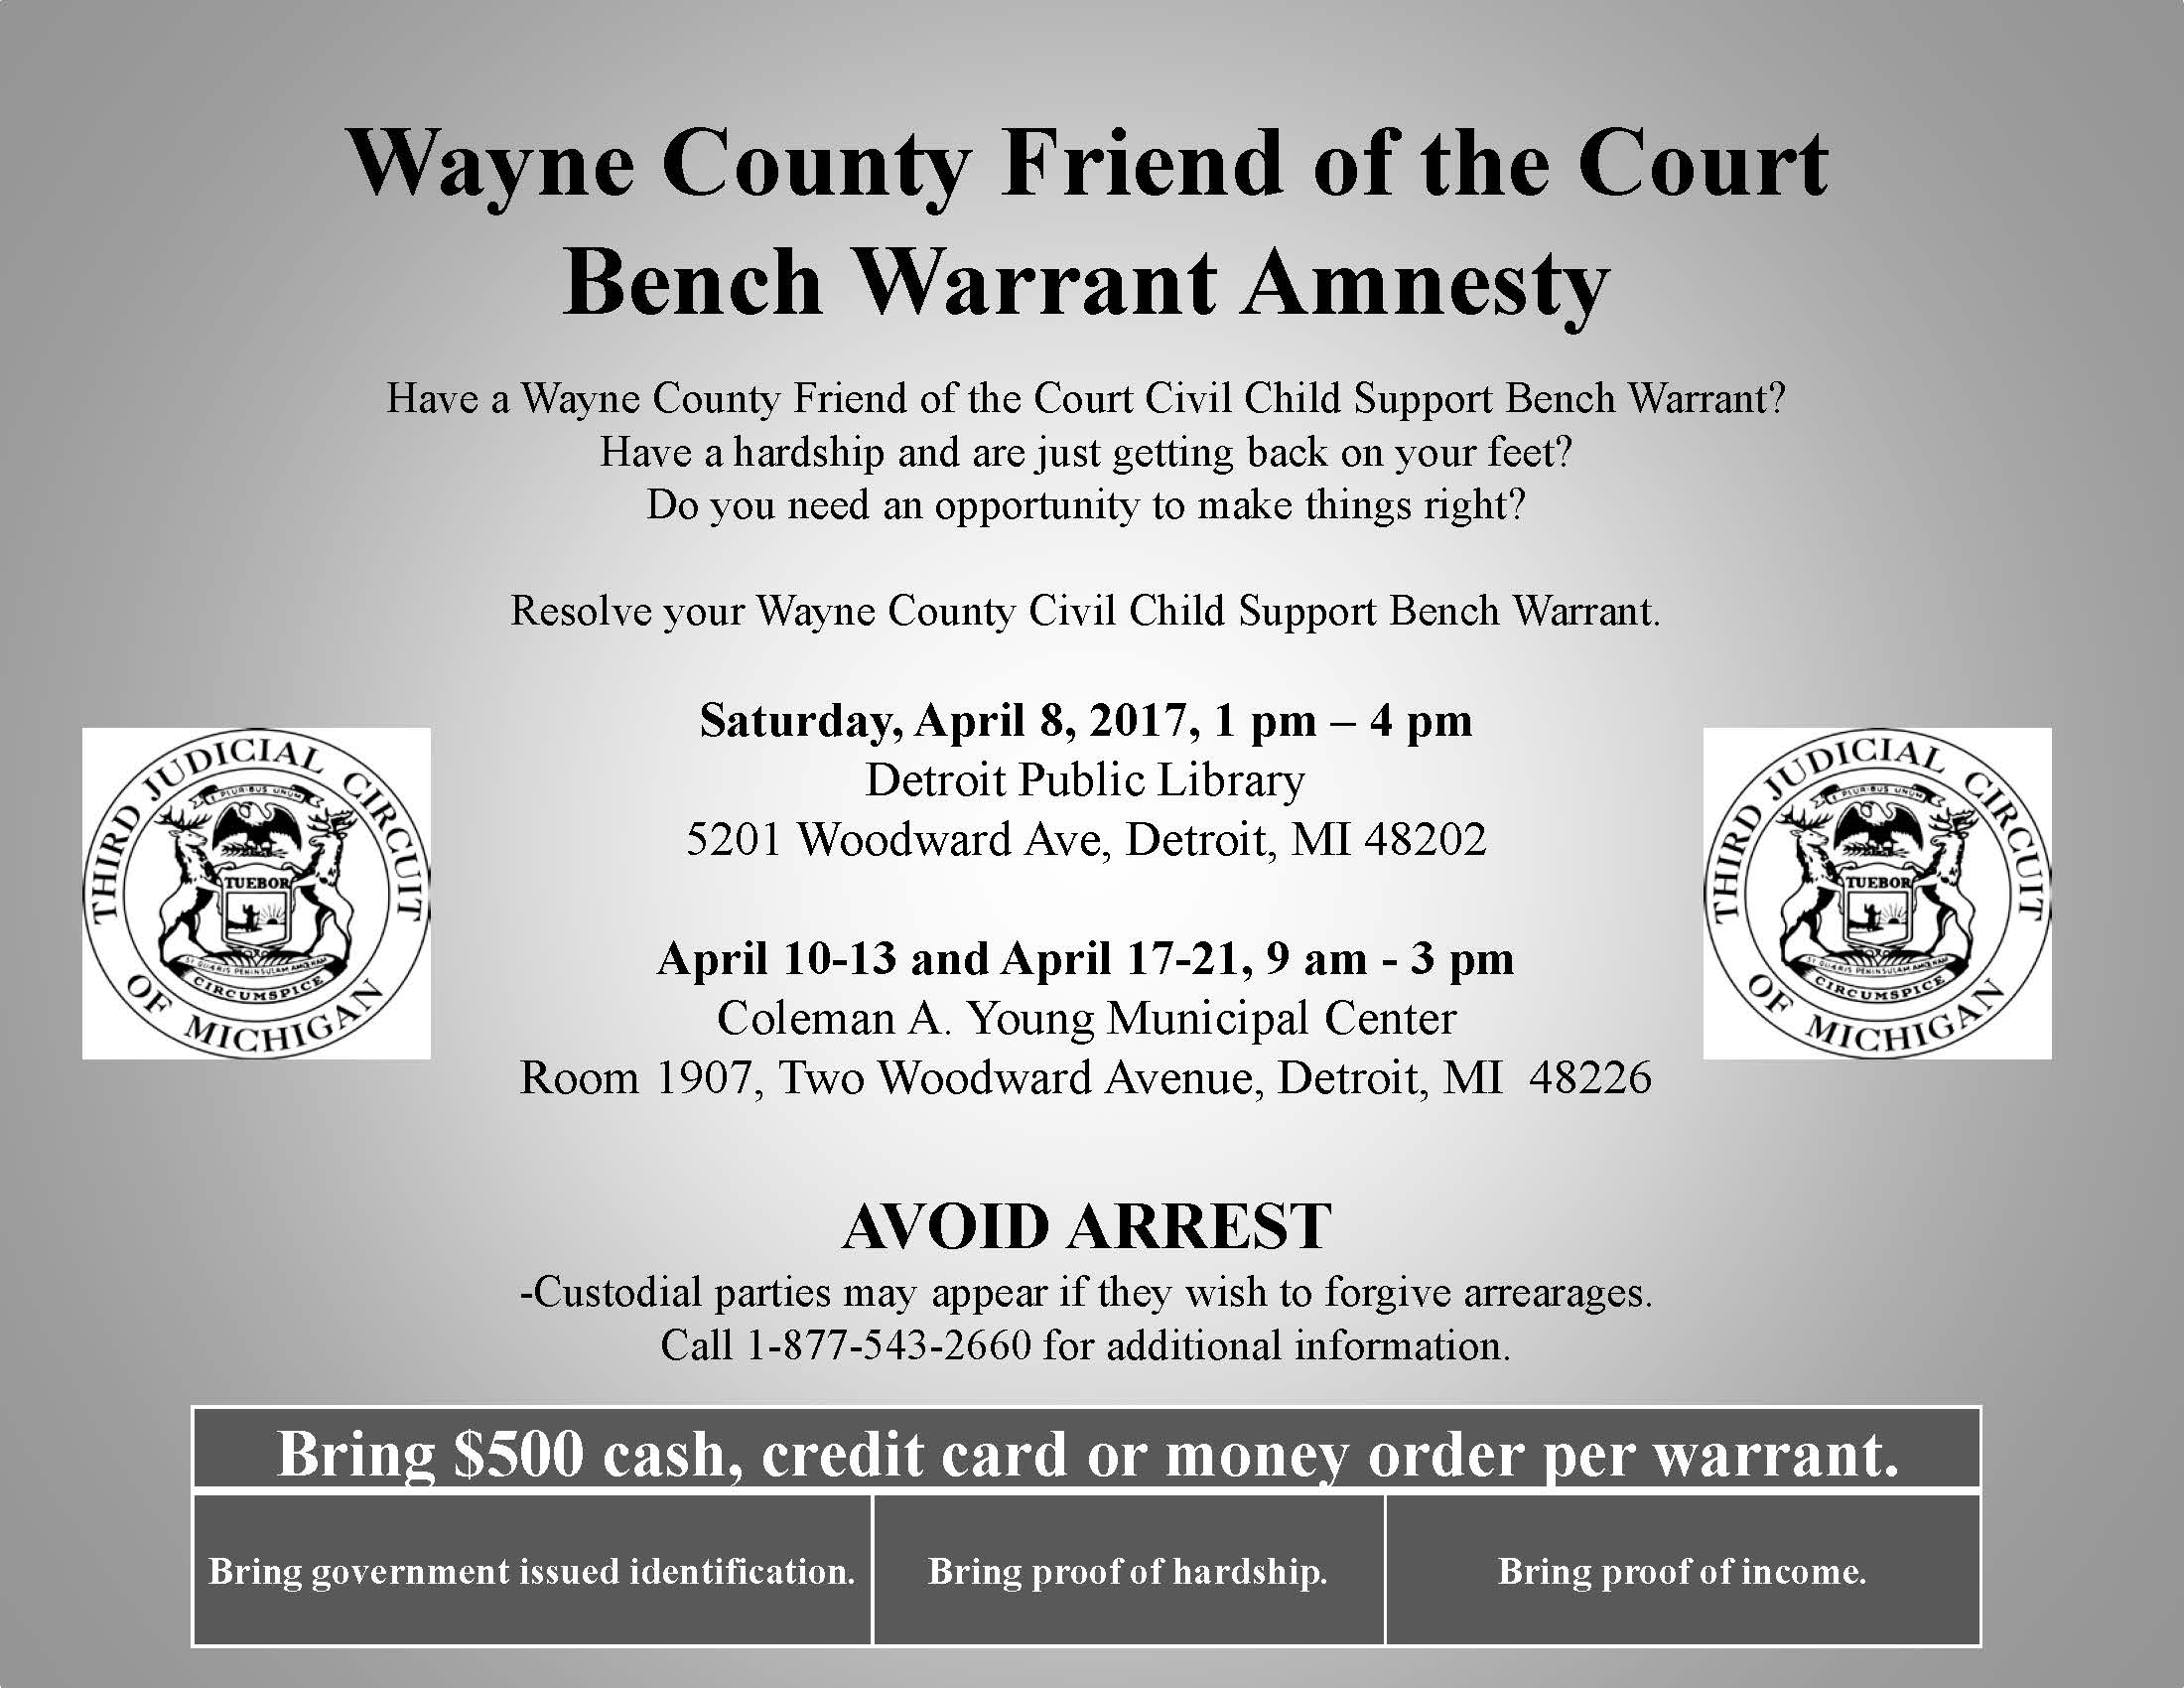 Worksheets Ky Child Support Worksheet updates in michigan family law child support wayneamnestyprogram april 2017